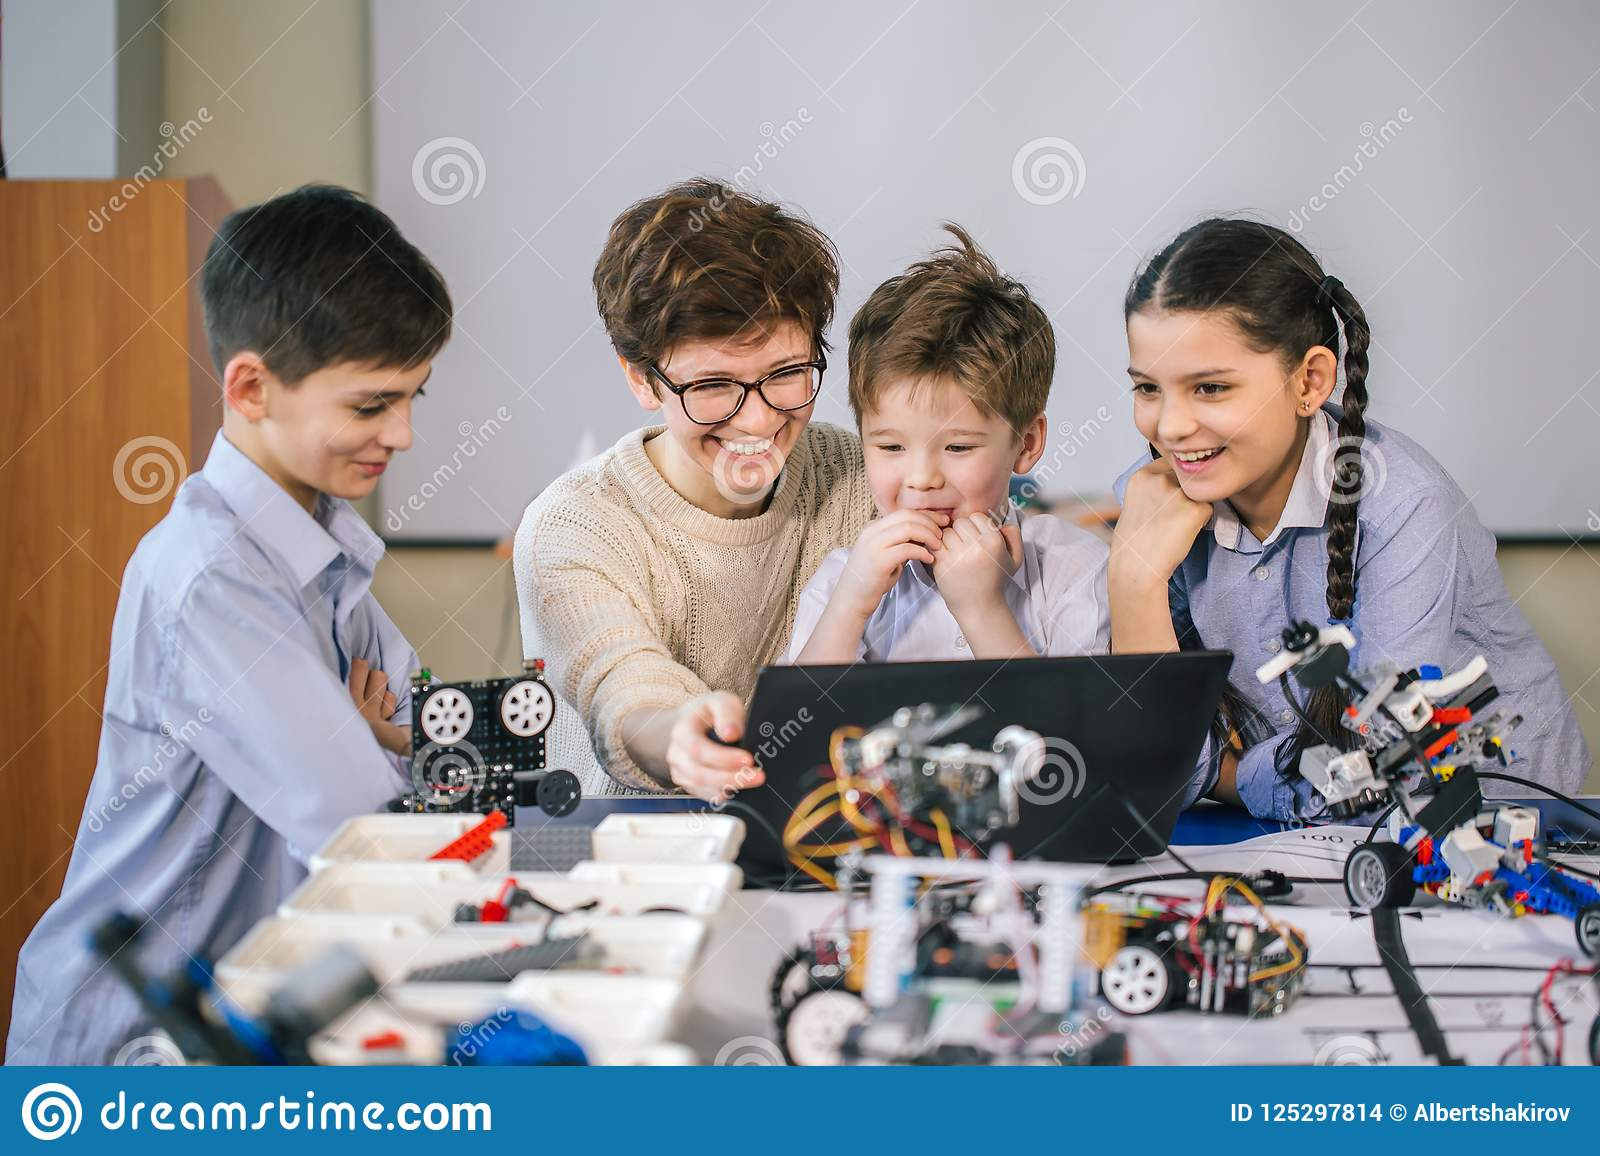 Curious Children Learn Programming Using Laptops On Extracurricular Electrical Wiring Classes Download Stock Photo Image Of Advertising